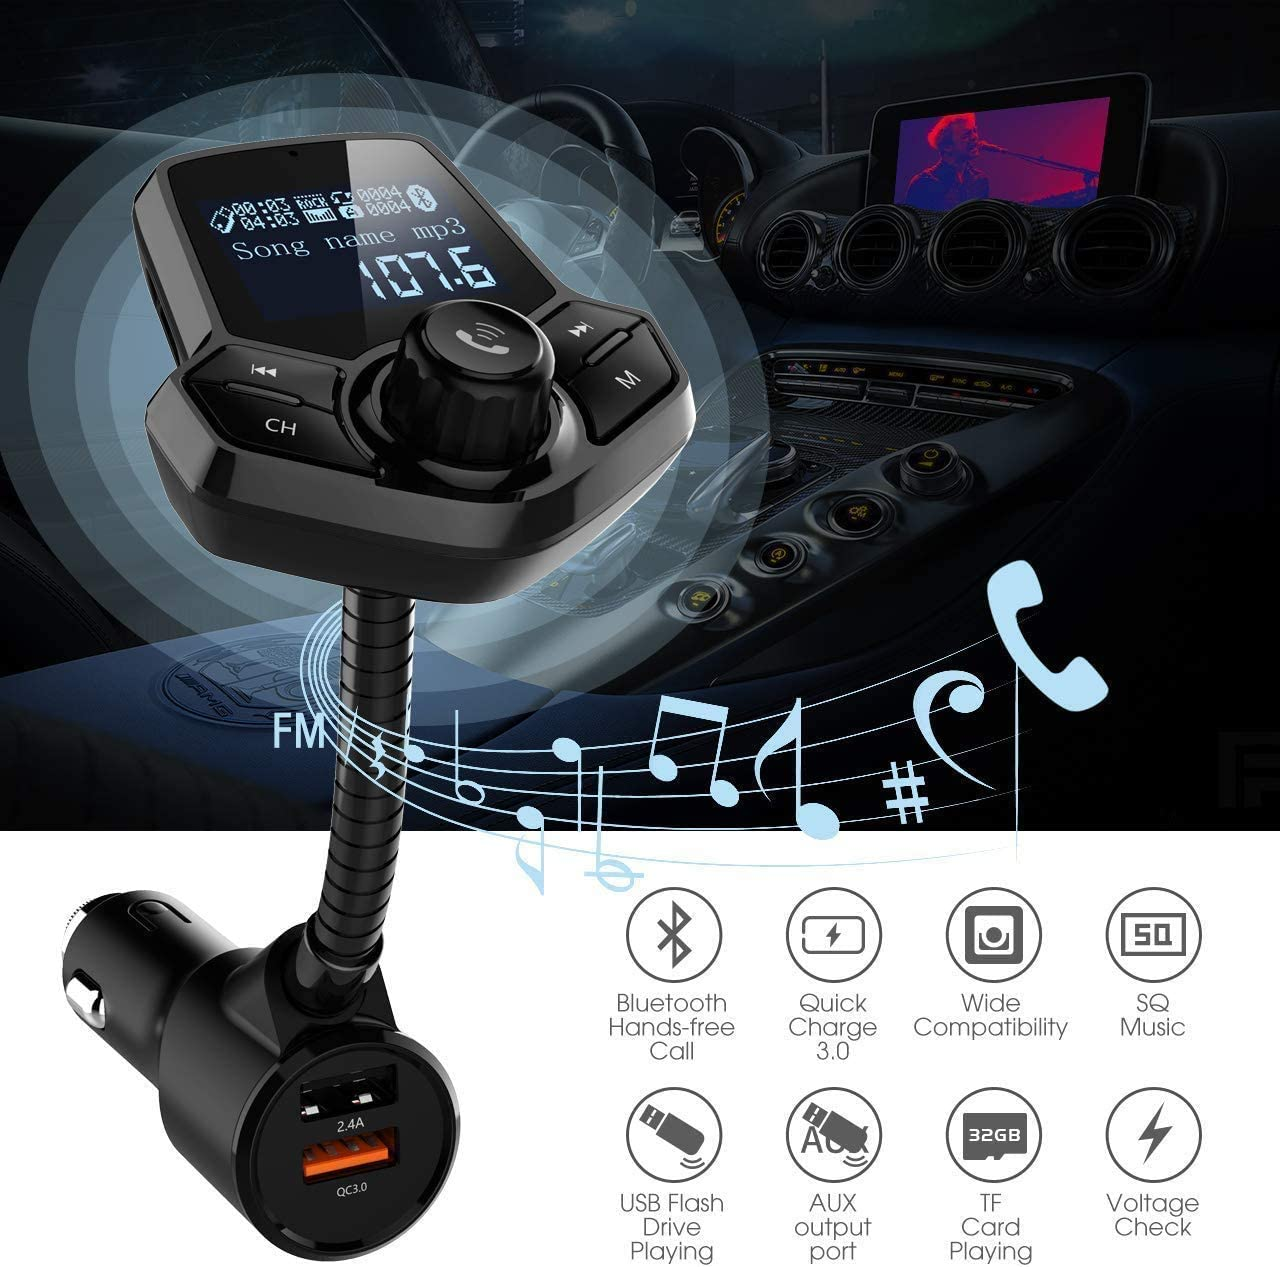 in-Car Bluetooth FM Transmitter Wireless Radio Adapter Hands-Free Car Kit with 1.44 Inches Display TF Card Mp3 Player Dual USB Ports AUX Input//Output Voltmeter Function for Smart Phones Audio Players JFONG CBFMCAR-M